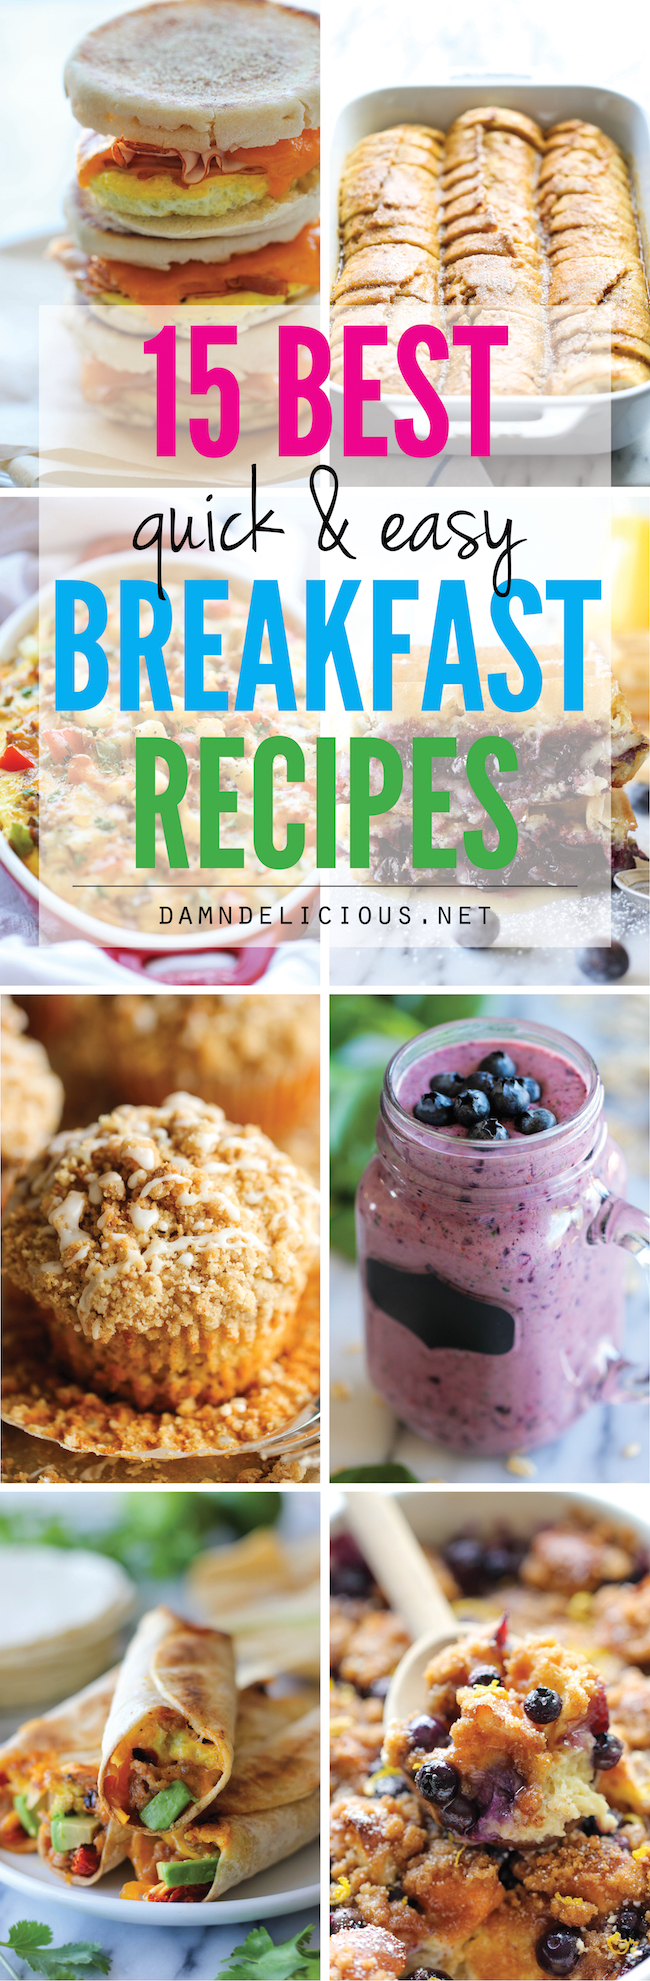 15 Best Quick And Easy Breakfast Recipes Damn Delicious